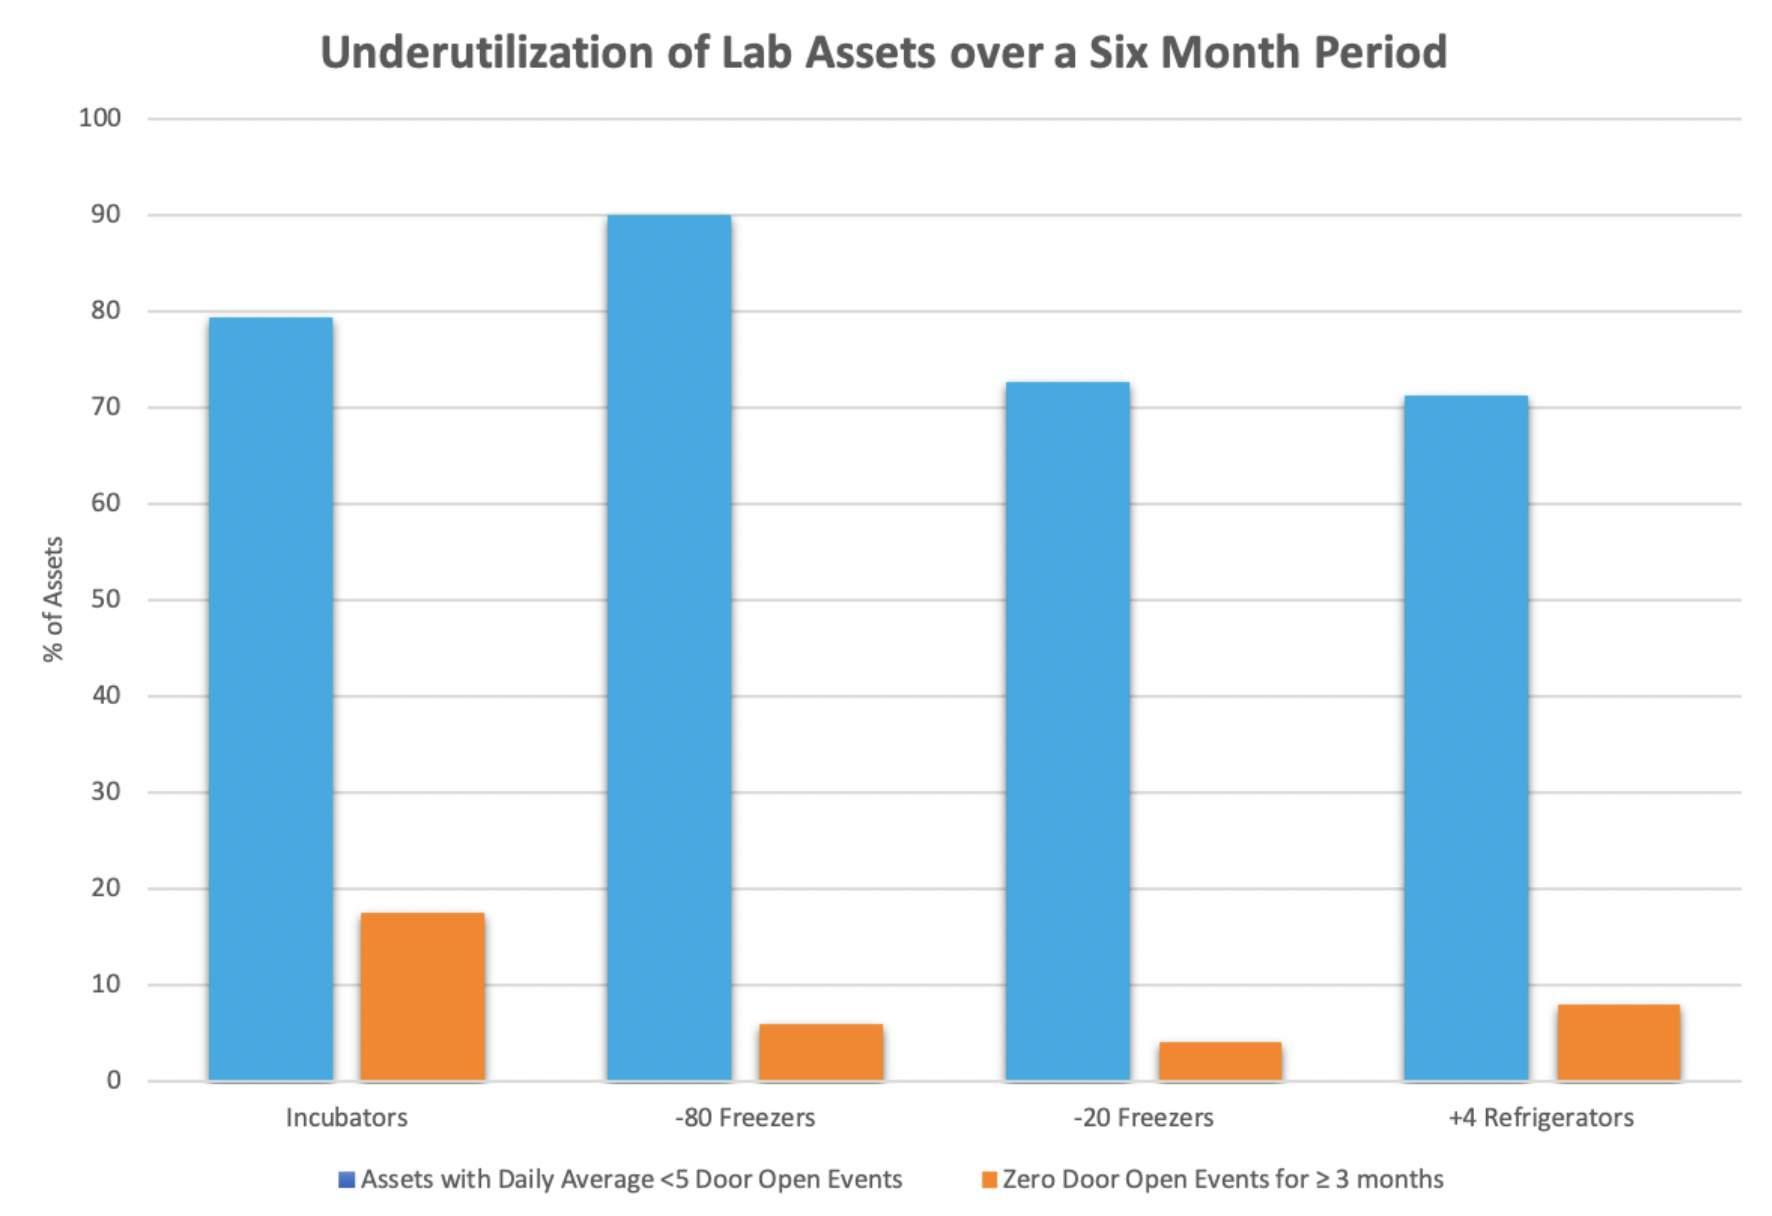 Figure 2: Underutilized lab assets over a six month period